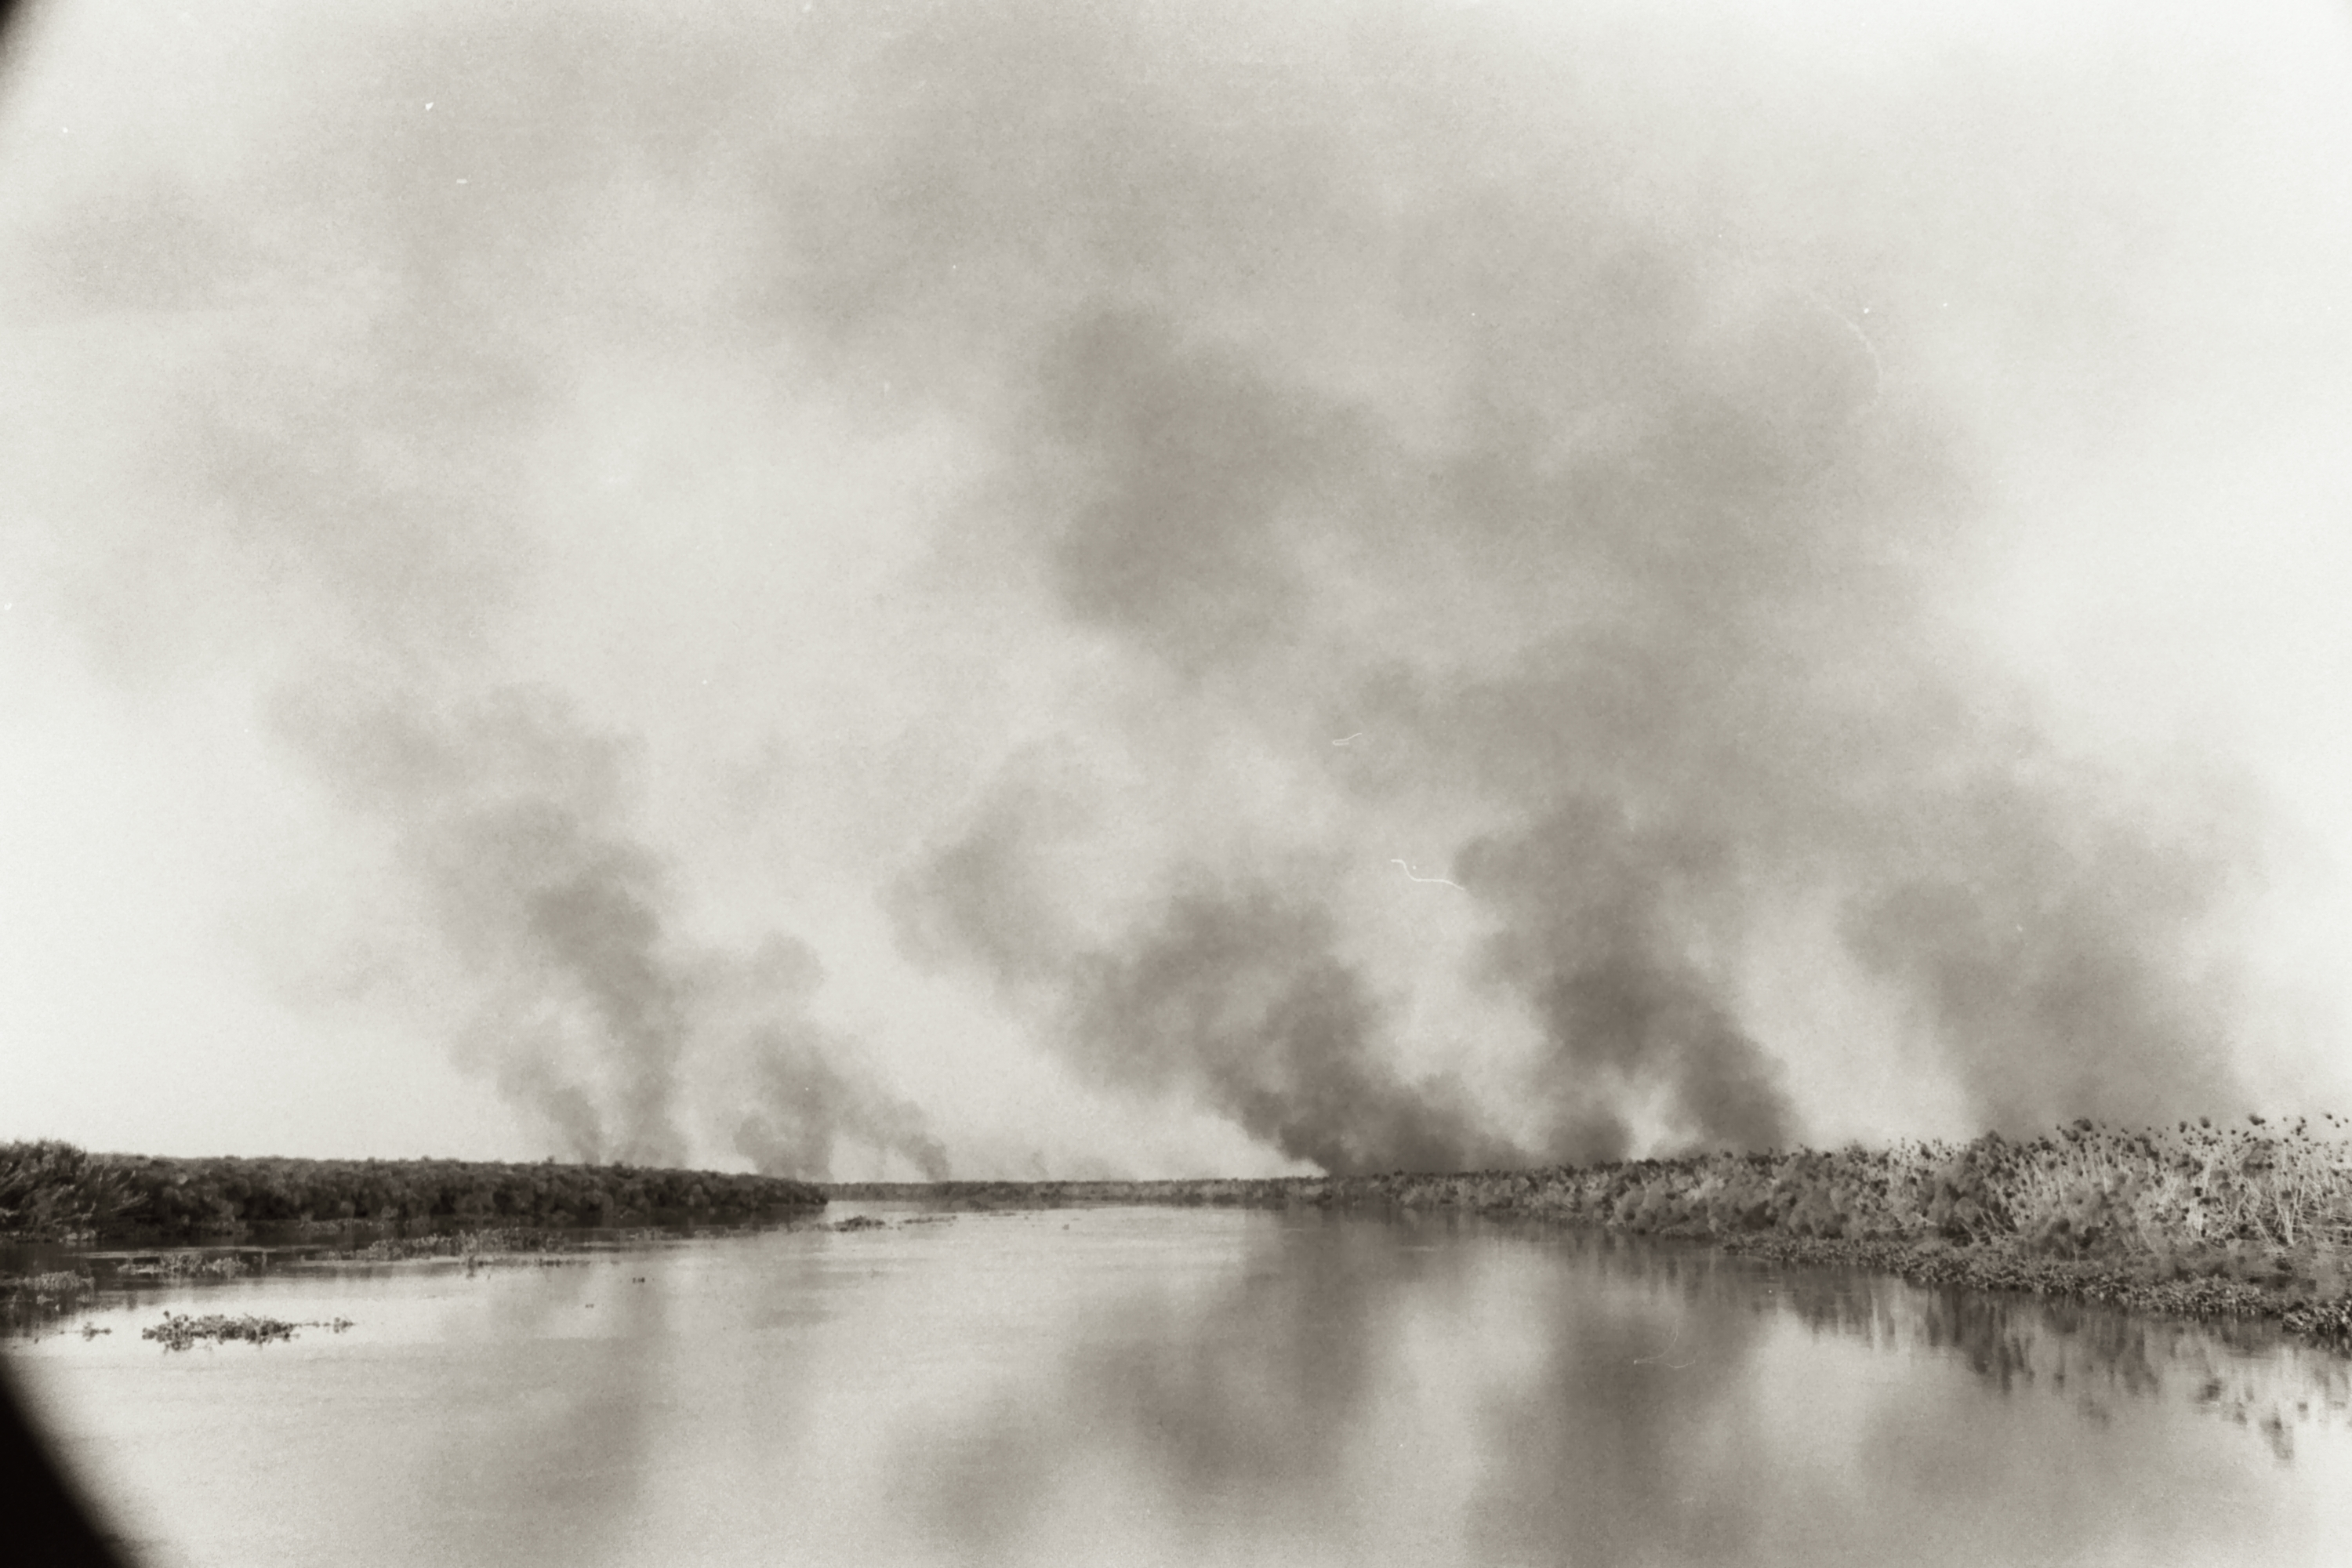 Burning marshland, South Sudan, 2007. Photo by Dan Morrison.